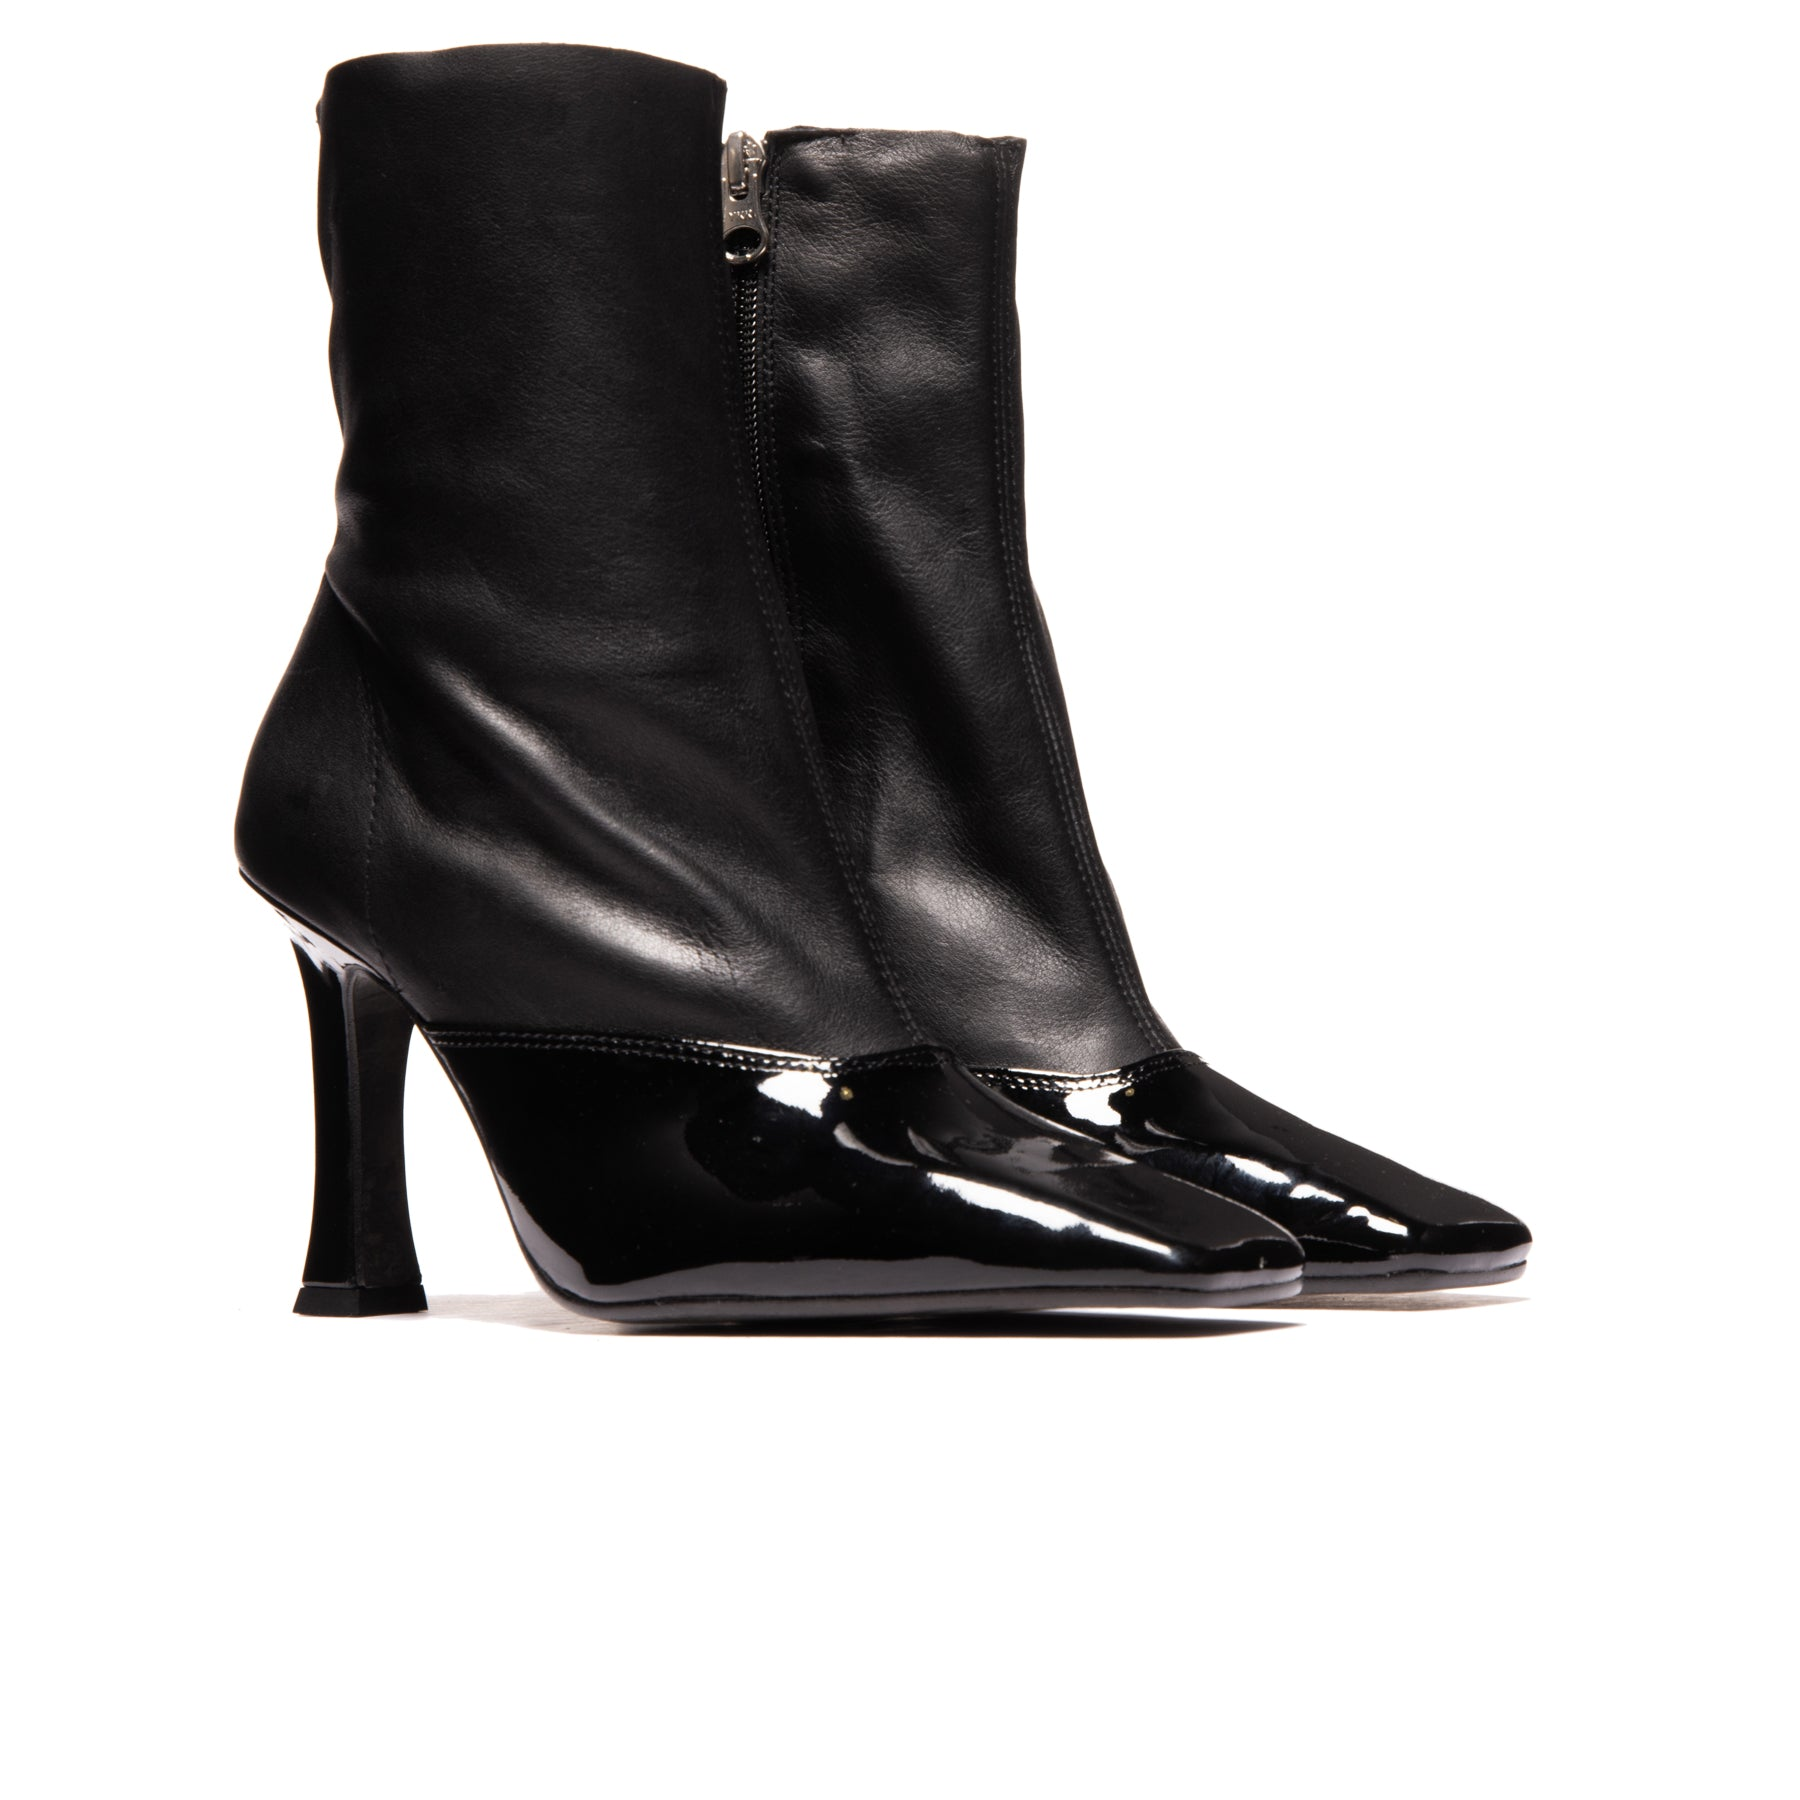 Orabelle Black Patent Leather